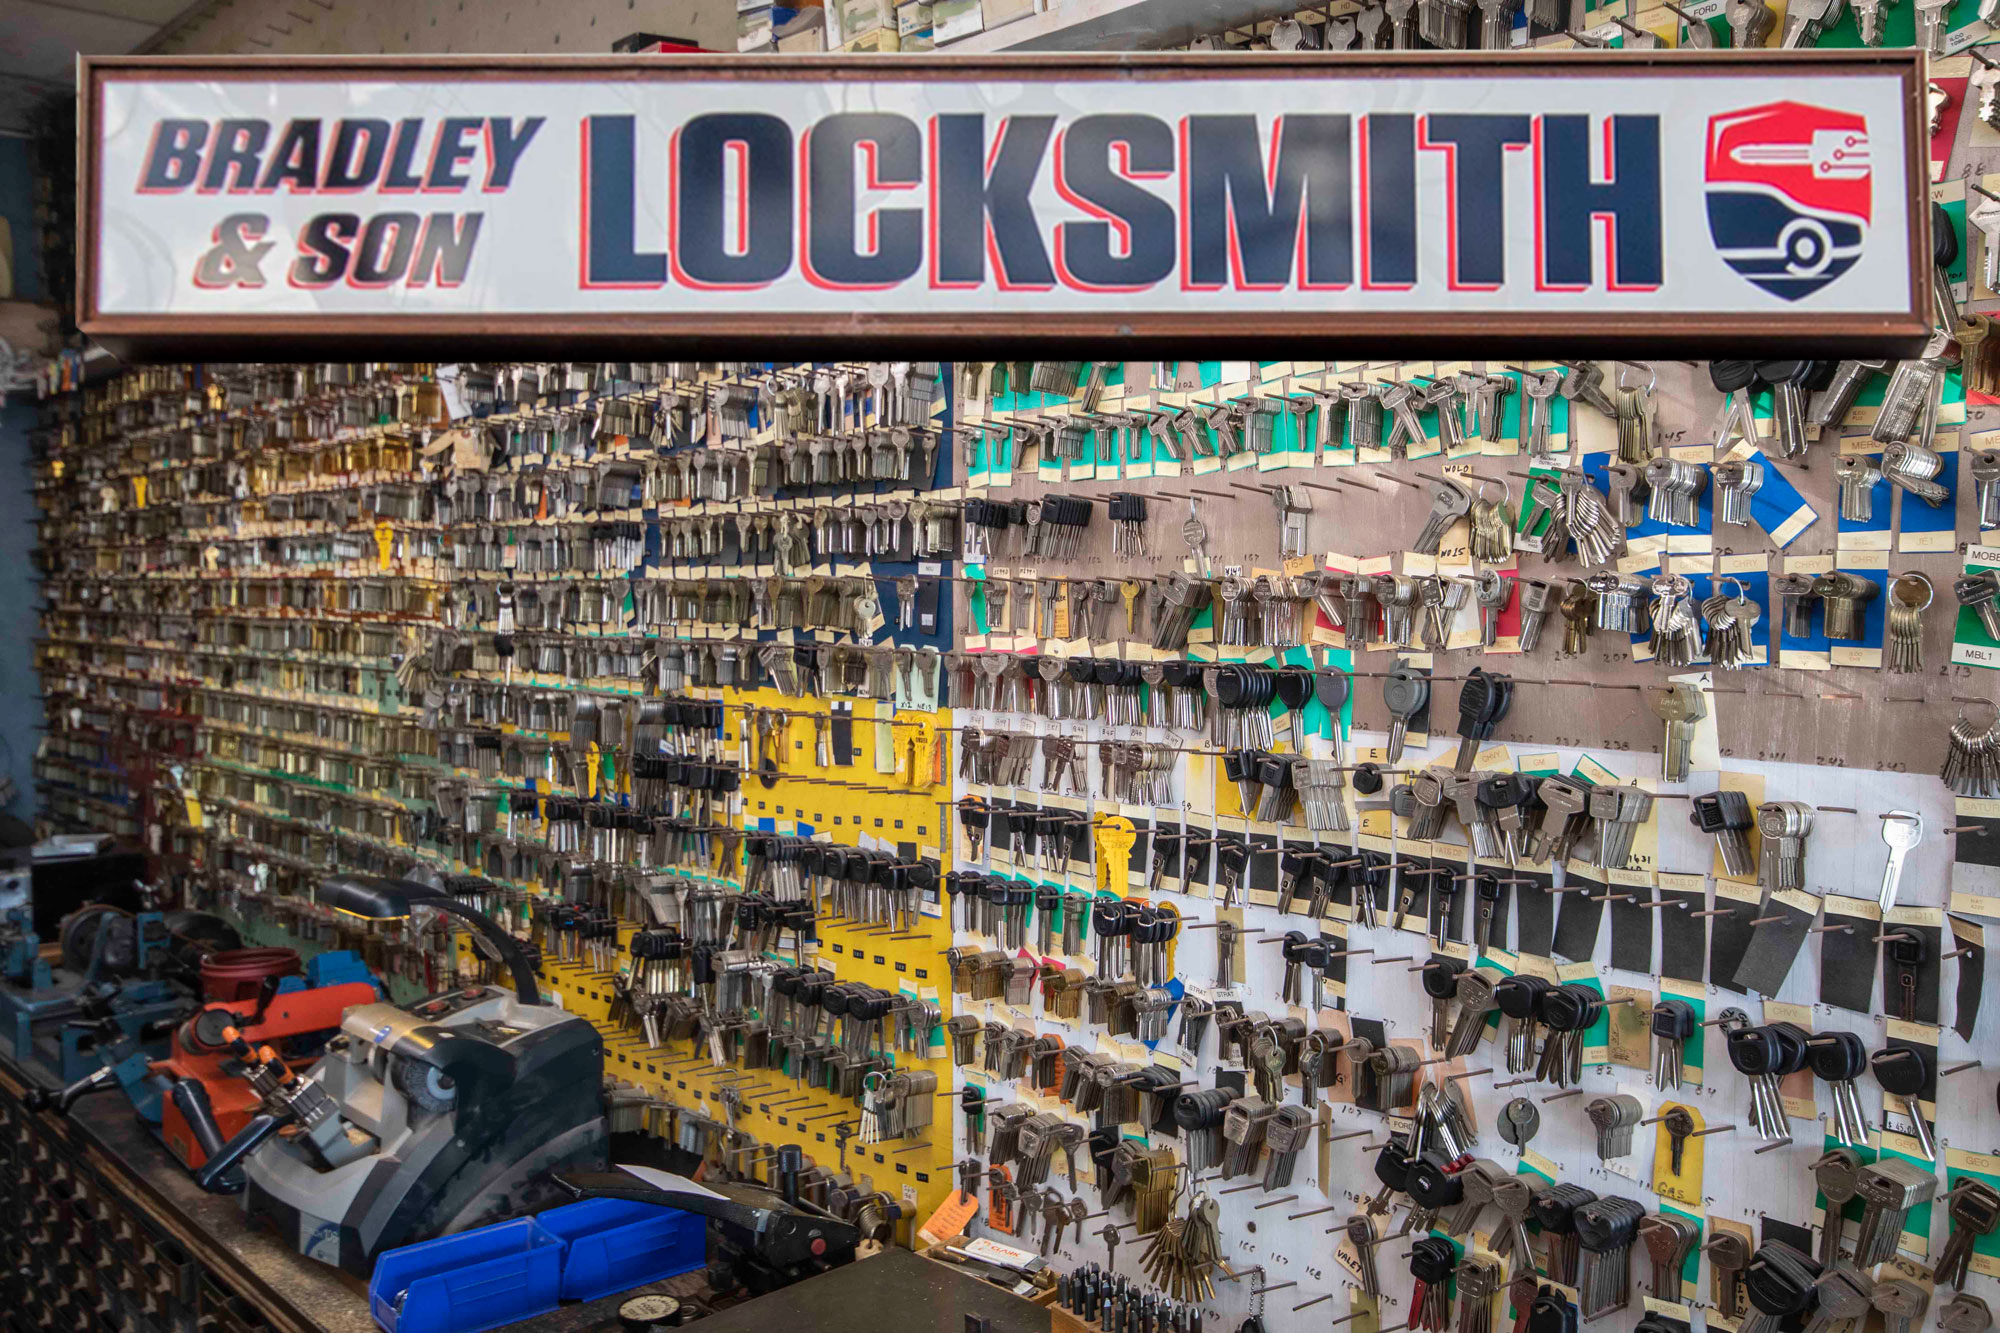 WT Bradley & Son Locksmith